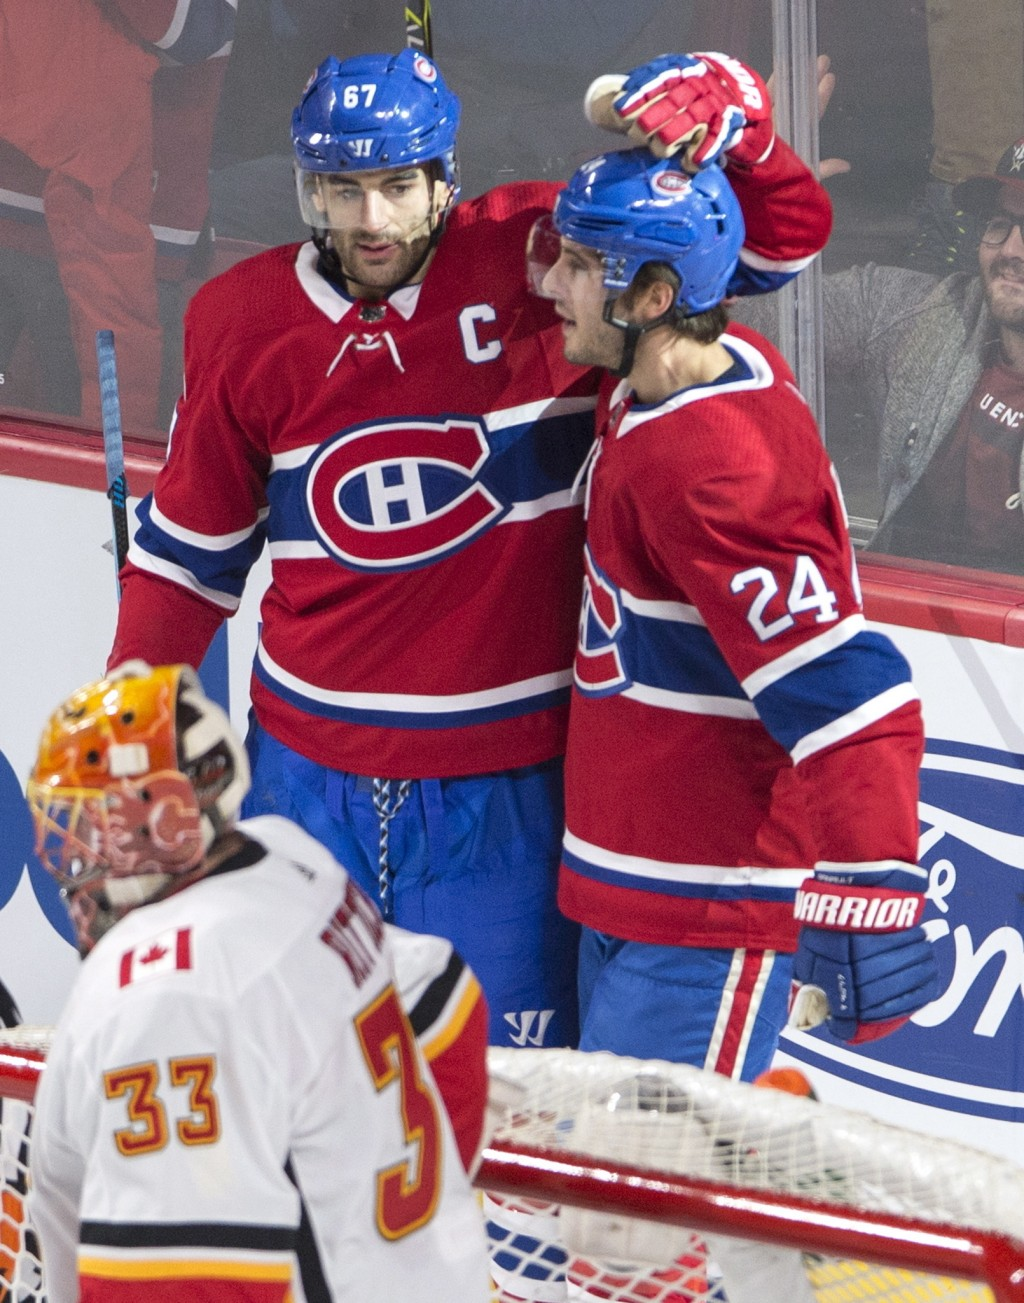 Montreal Canadiens center Phillip Danault (24) celebrates his goal with left wing Max Pacioretty (67) as Calgary Flames goalie David Rittich (33) reac